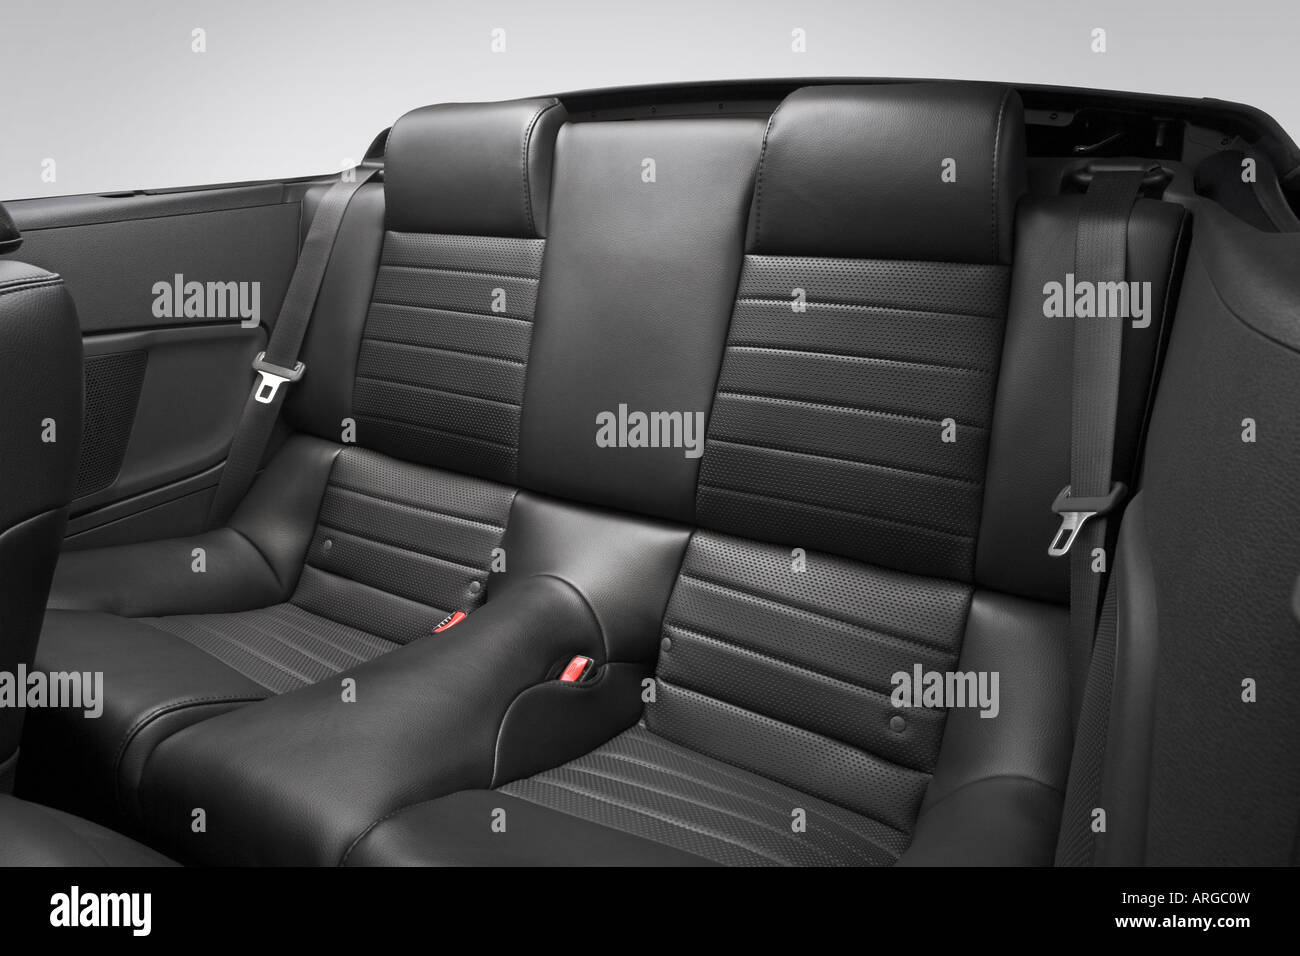 Pleasing 2007 Ford Mustang Gt Premium In Blue Rear Seats Stock Beatyapartments Chair Design Images Beatyapartmentscom